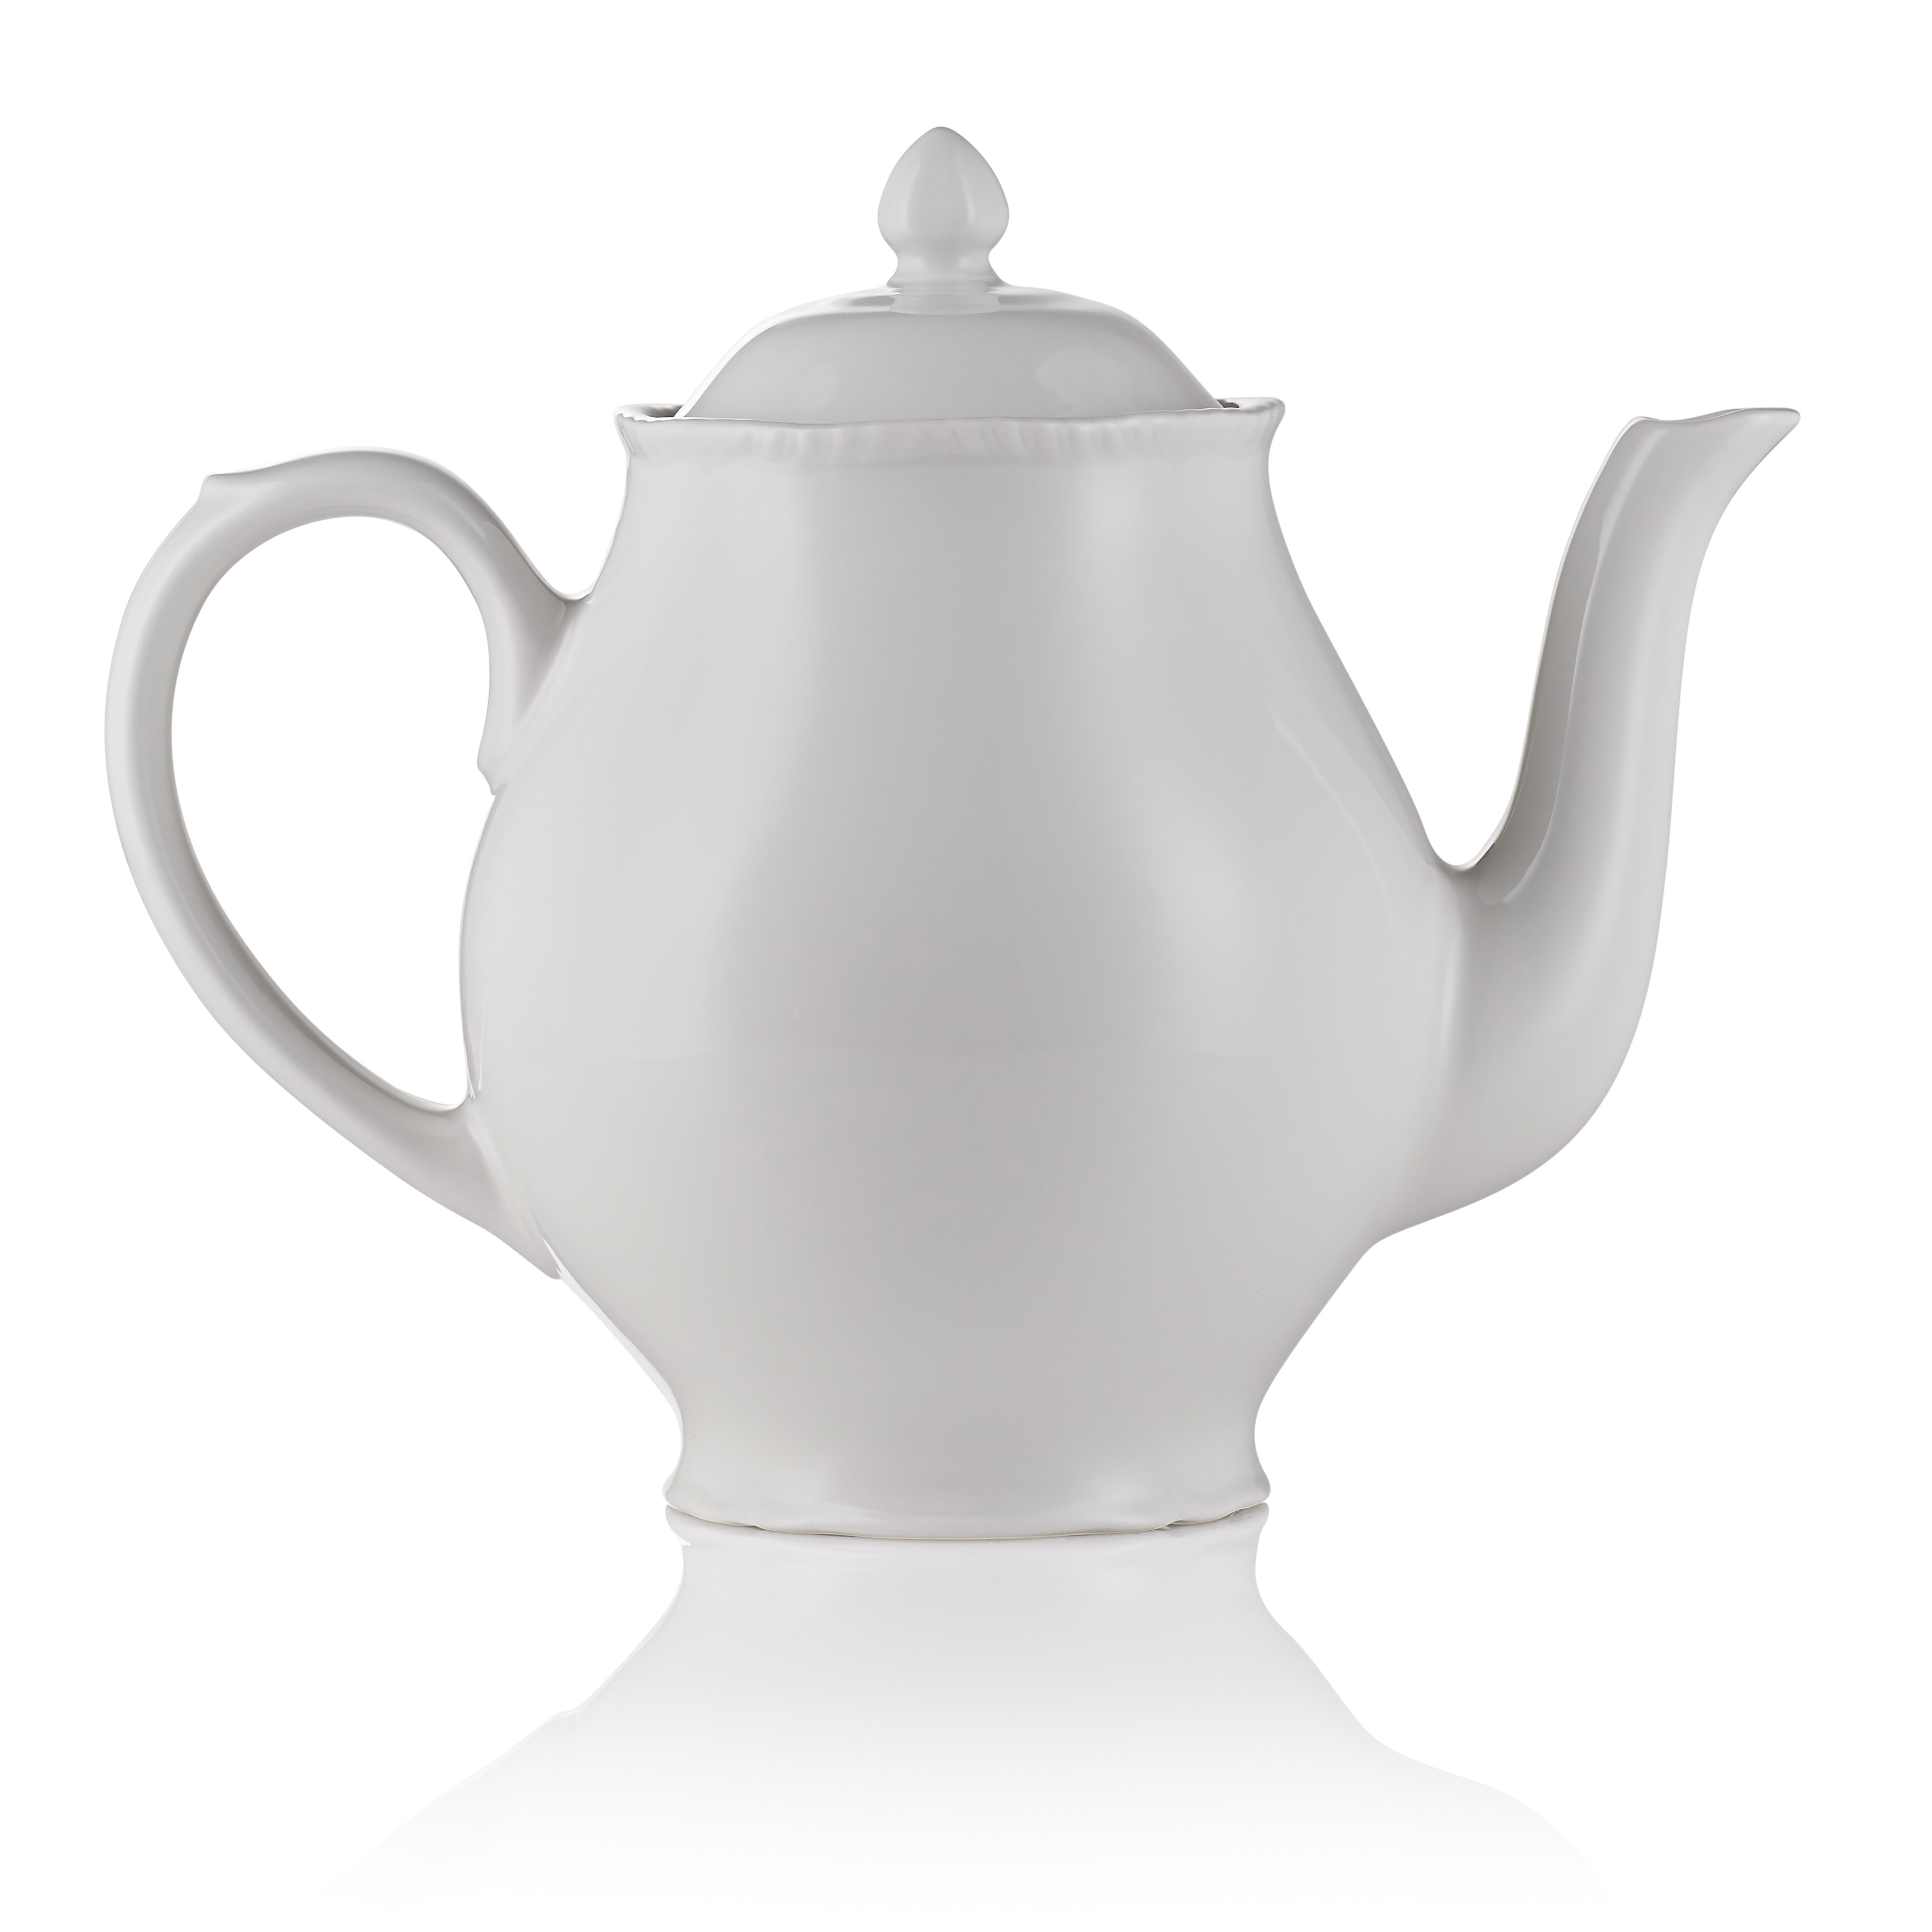 Tea Amp Coffee Pot Hire Catering Amp Crockery Hire